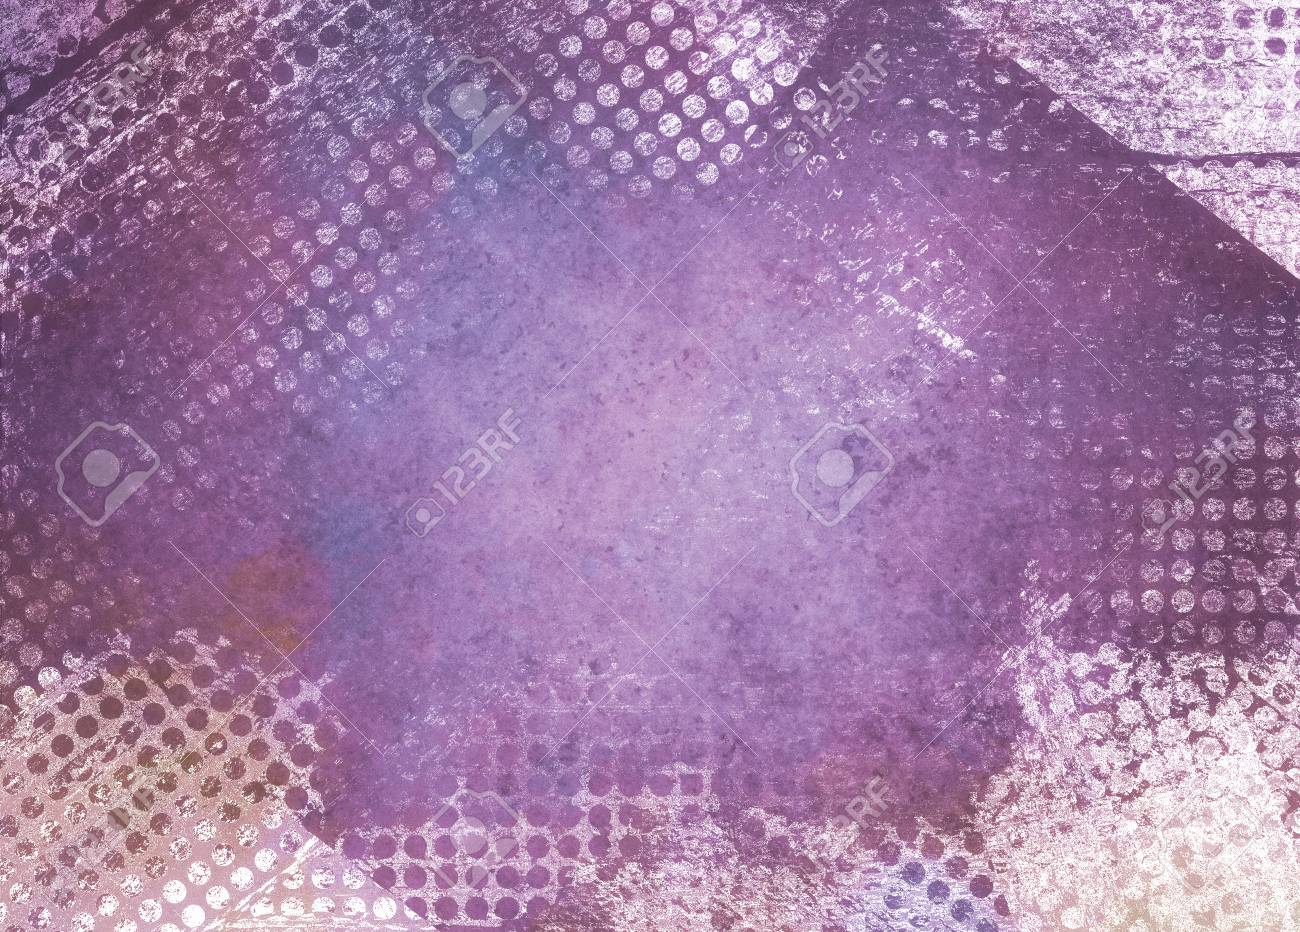 messy grunge purple background paper with textured abstract white grid pattern border - 74726684